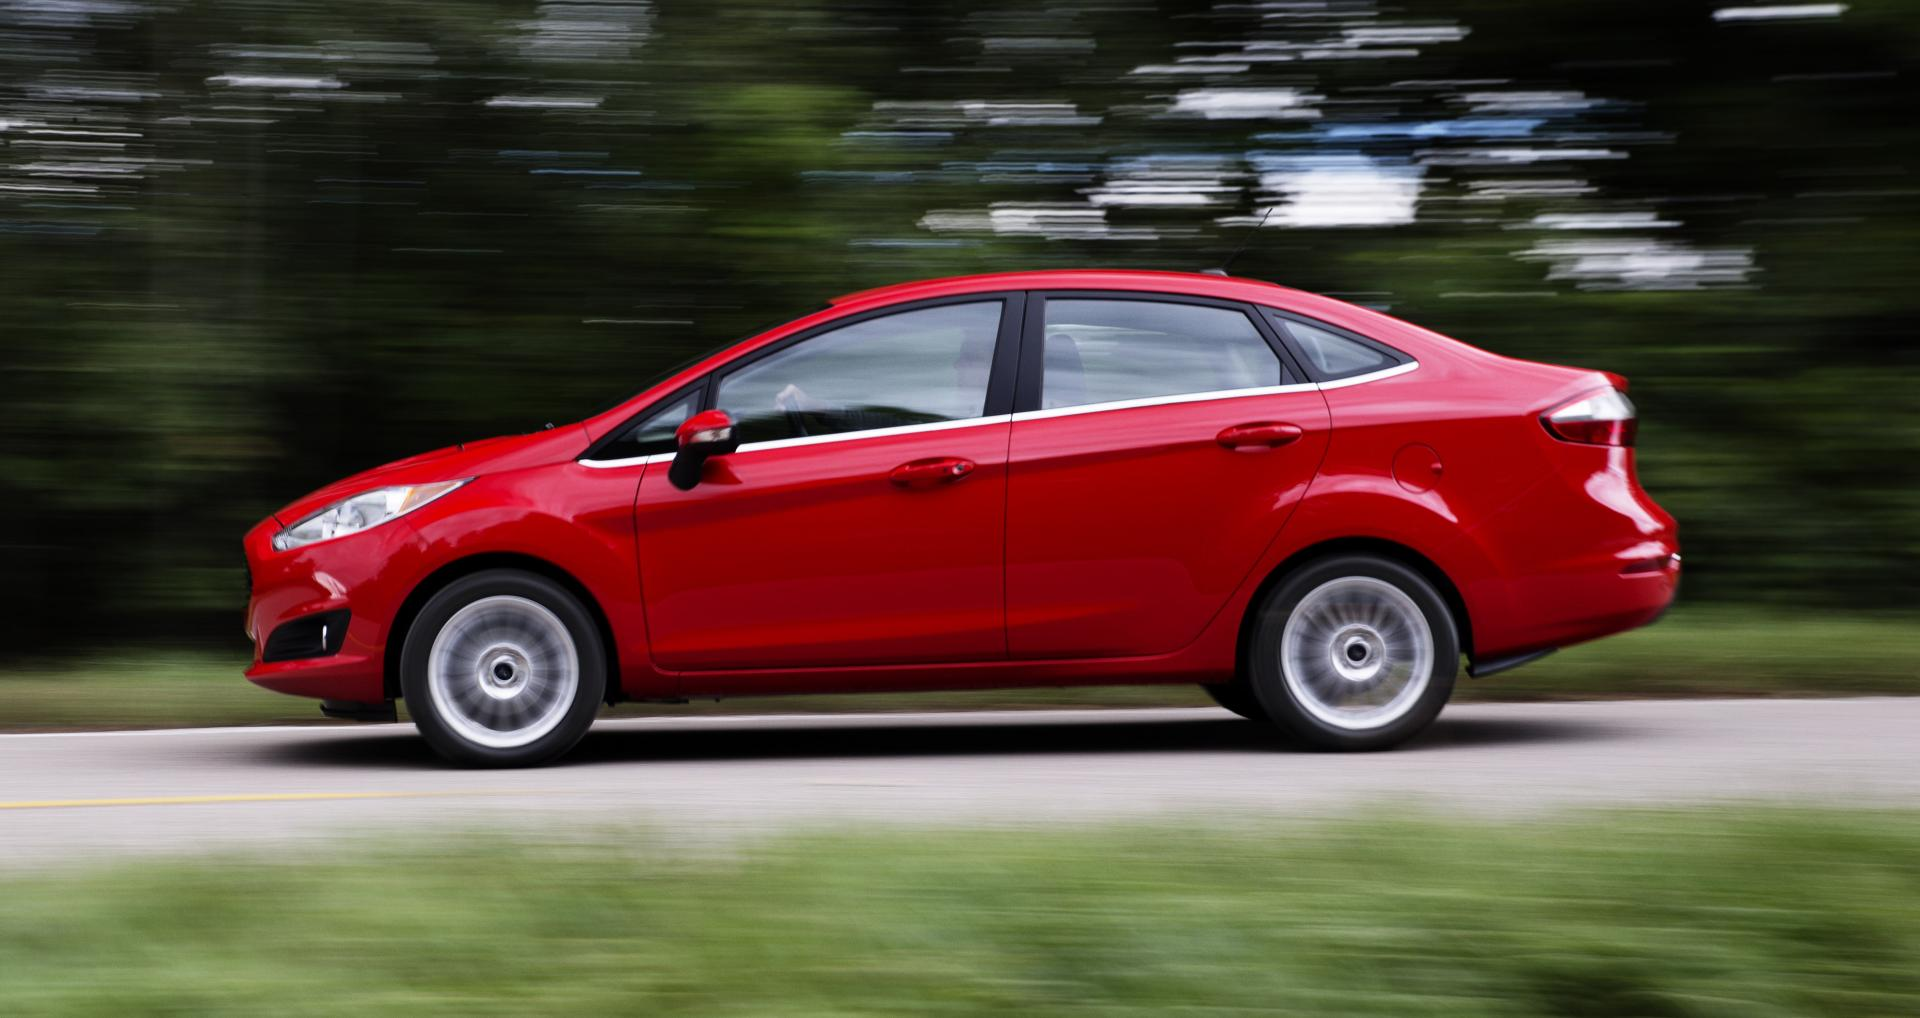 Carros Ford Fiesta 2015 2015 Ford Fiesta Sedán Prices